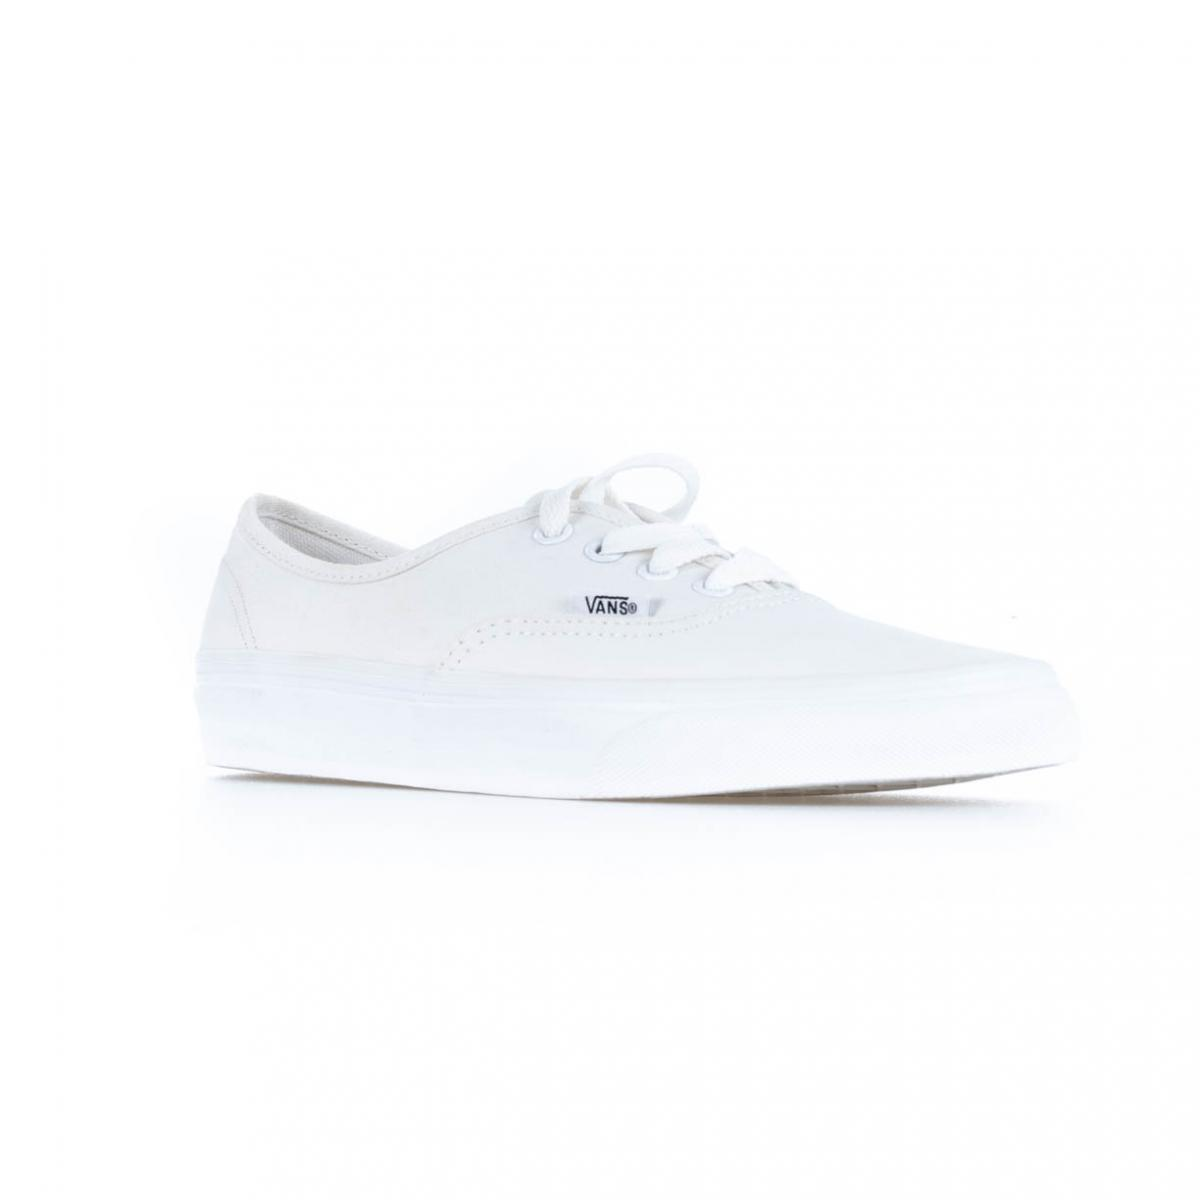 SCARPE UNISEX VANS AUTHENTIC VN-0 EE3W00 TRUE WHITE